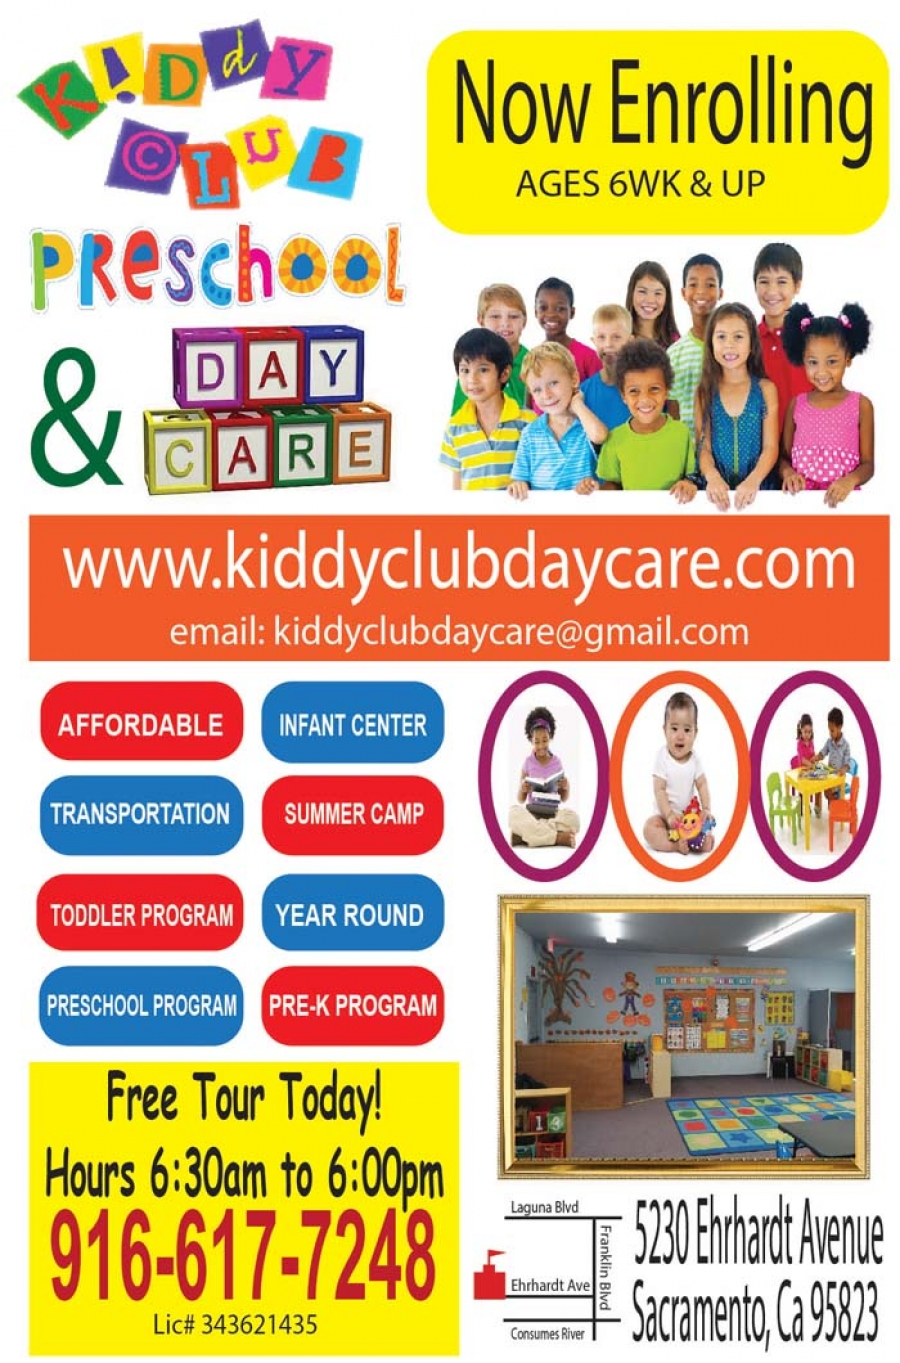 Now Enrolling for Kiddy Club Daycare